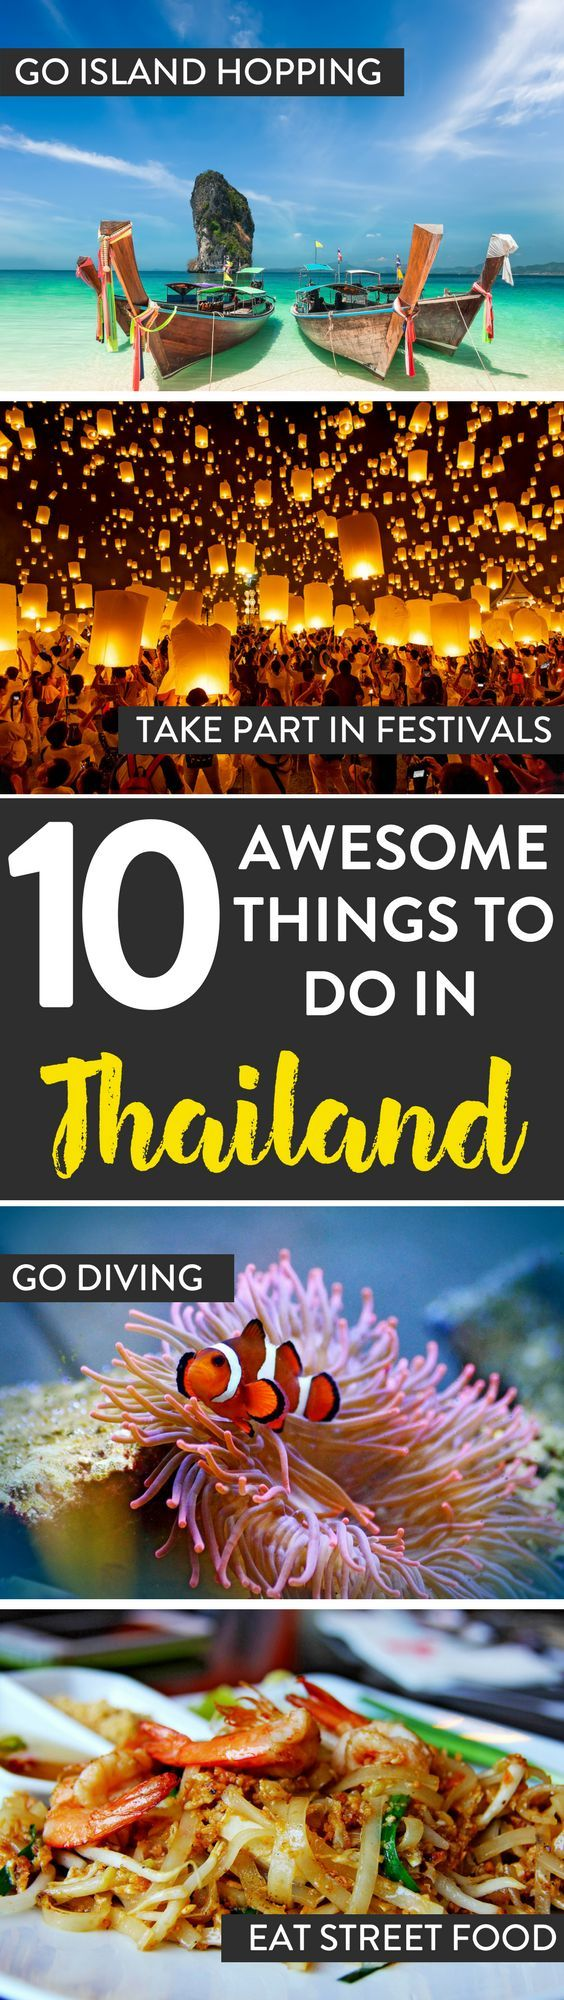 Thailand Travel | Looking for awesome things to do while in Thailand? Here are 10 of our recommendations on what to see and do. https://hotellook.com/countries/arab-emirates?marker=126022.viedereve